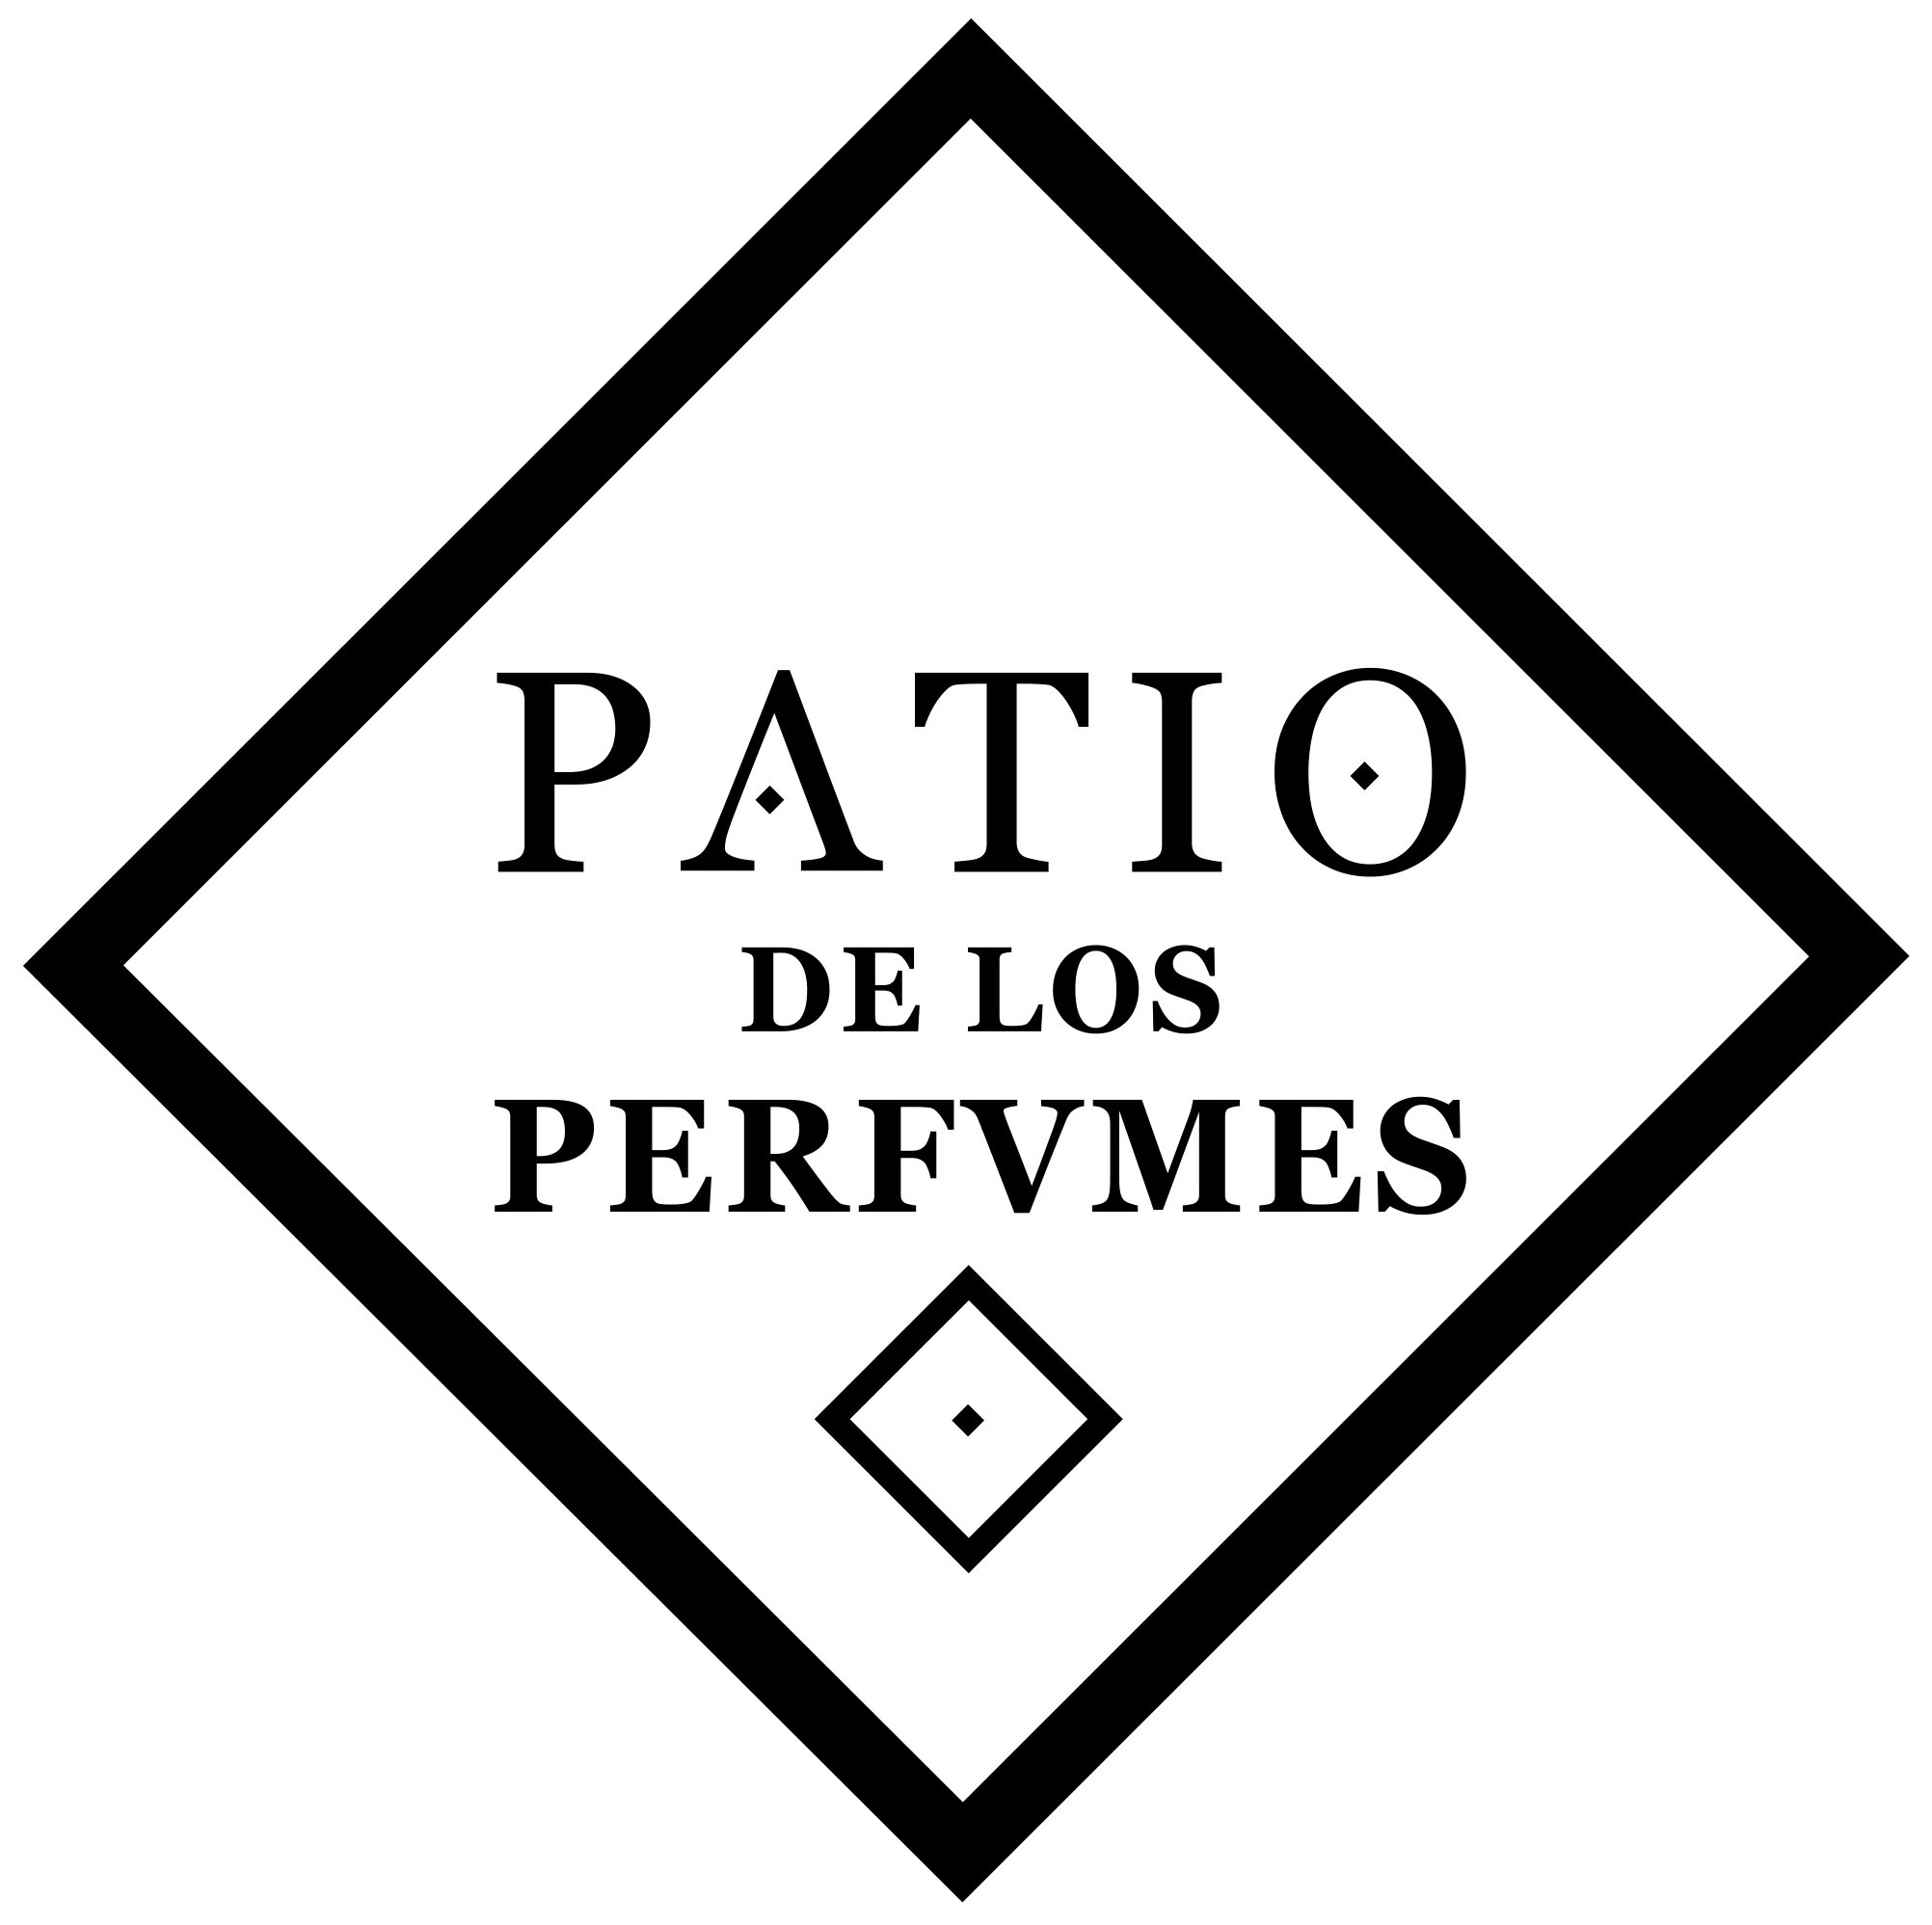 PATIO DE LOS PERFUMES